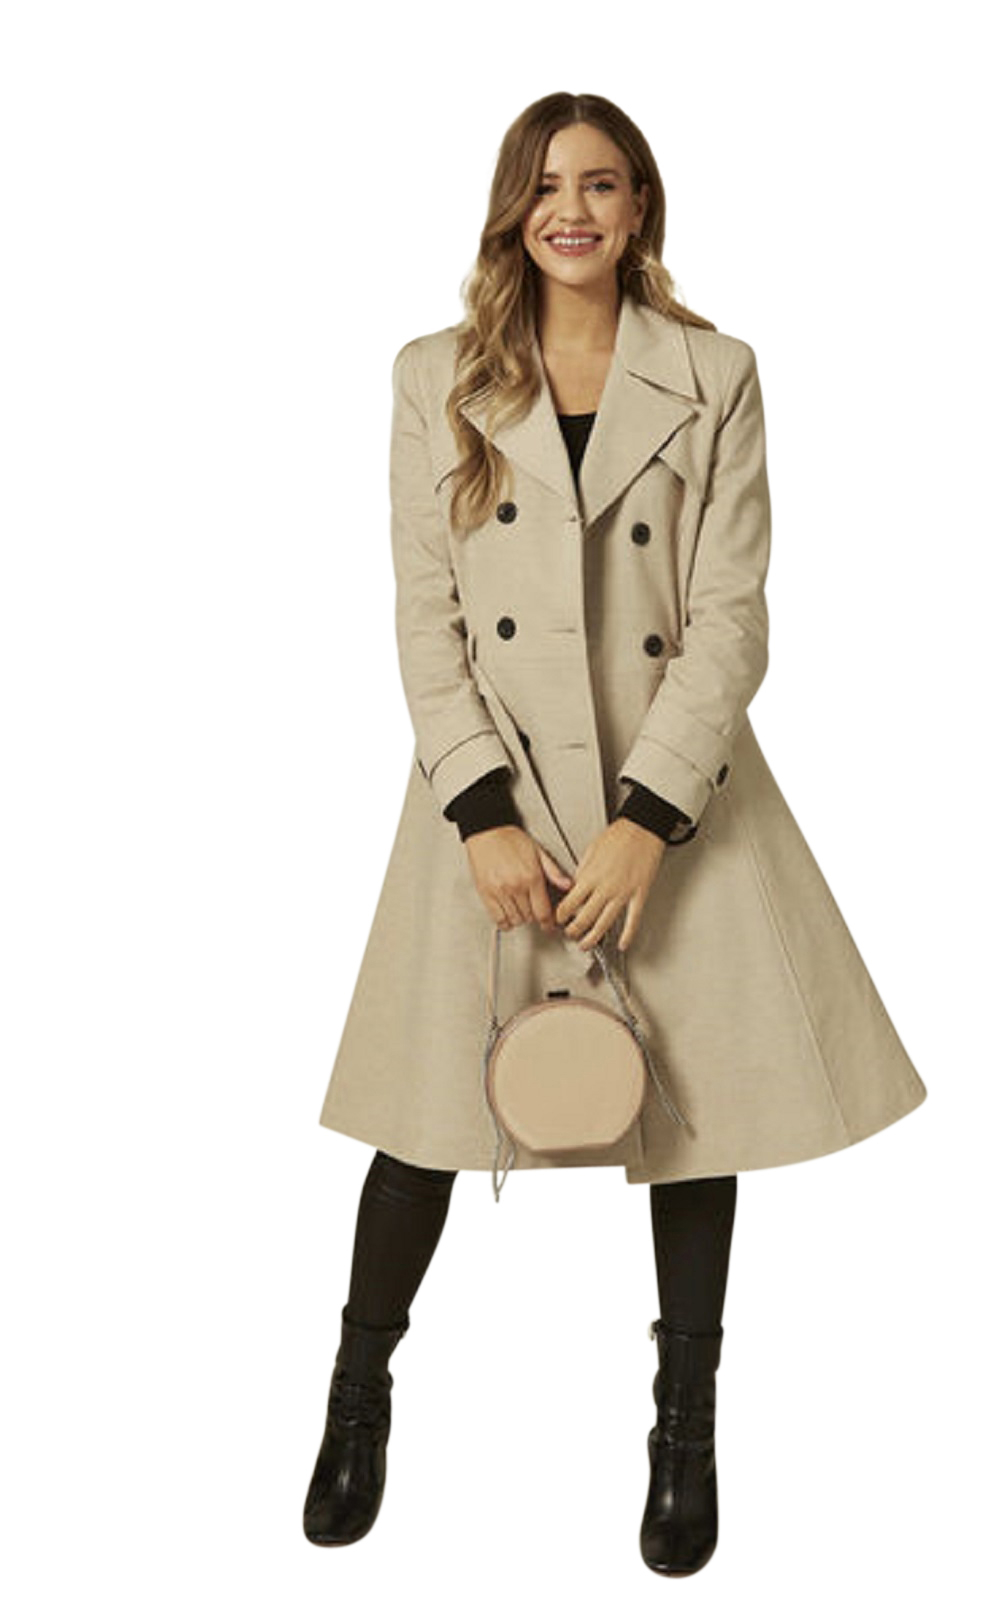 Anastasia Womens Showwer Proof Belted TrenchCoat